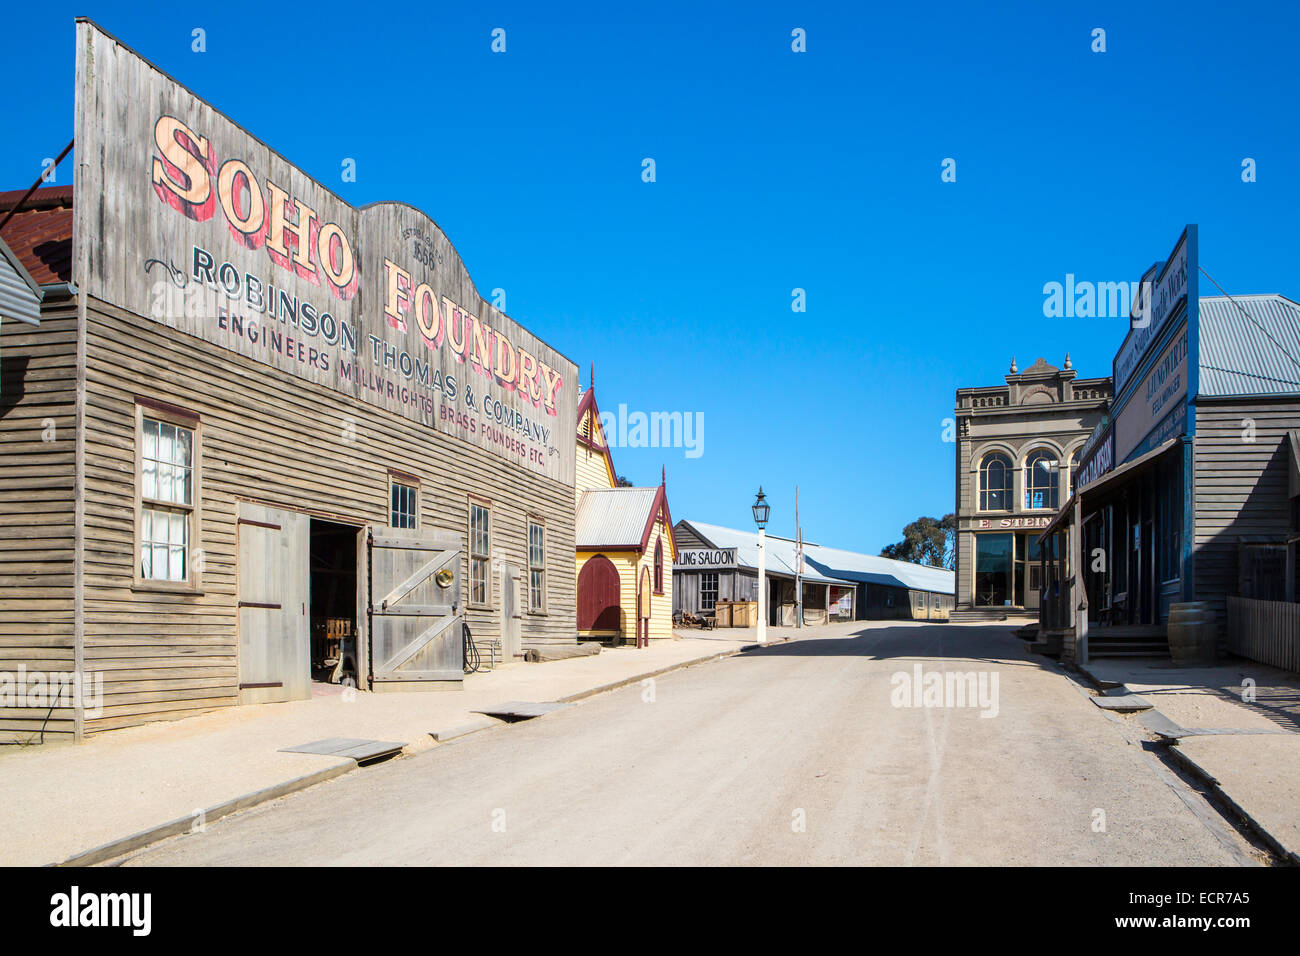 SOVEREIGN HILL, AUSTRALIA - OCTOBER 5: Sovereign Hill is an open air museum recreating the atmosphere of a gold - Stock Image